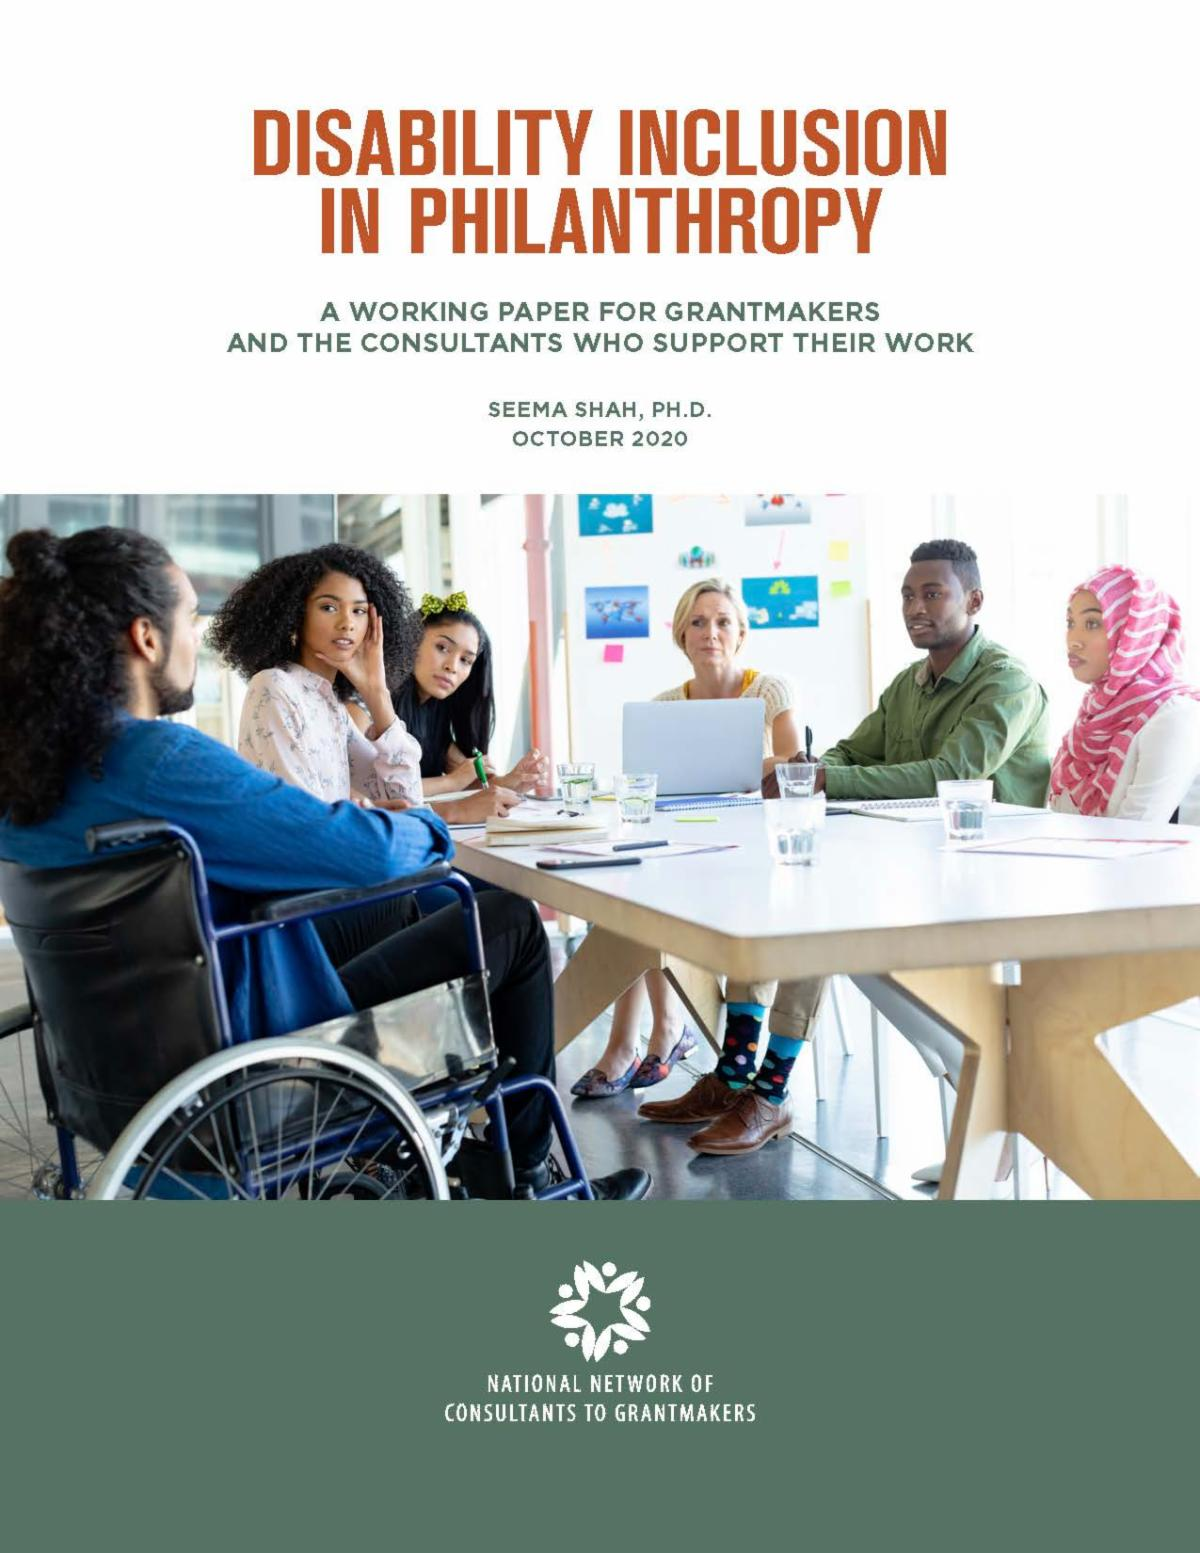 Cover of Disability Inclusion in Philanthropy working paper.